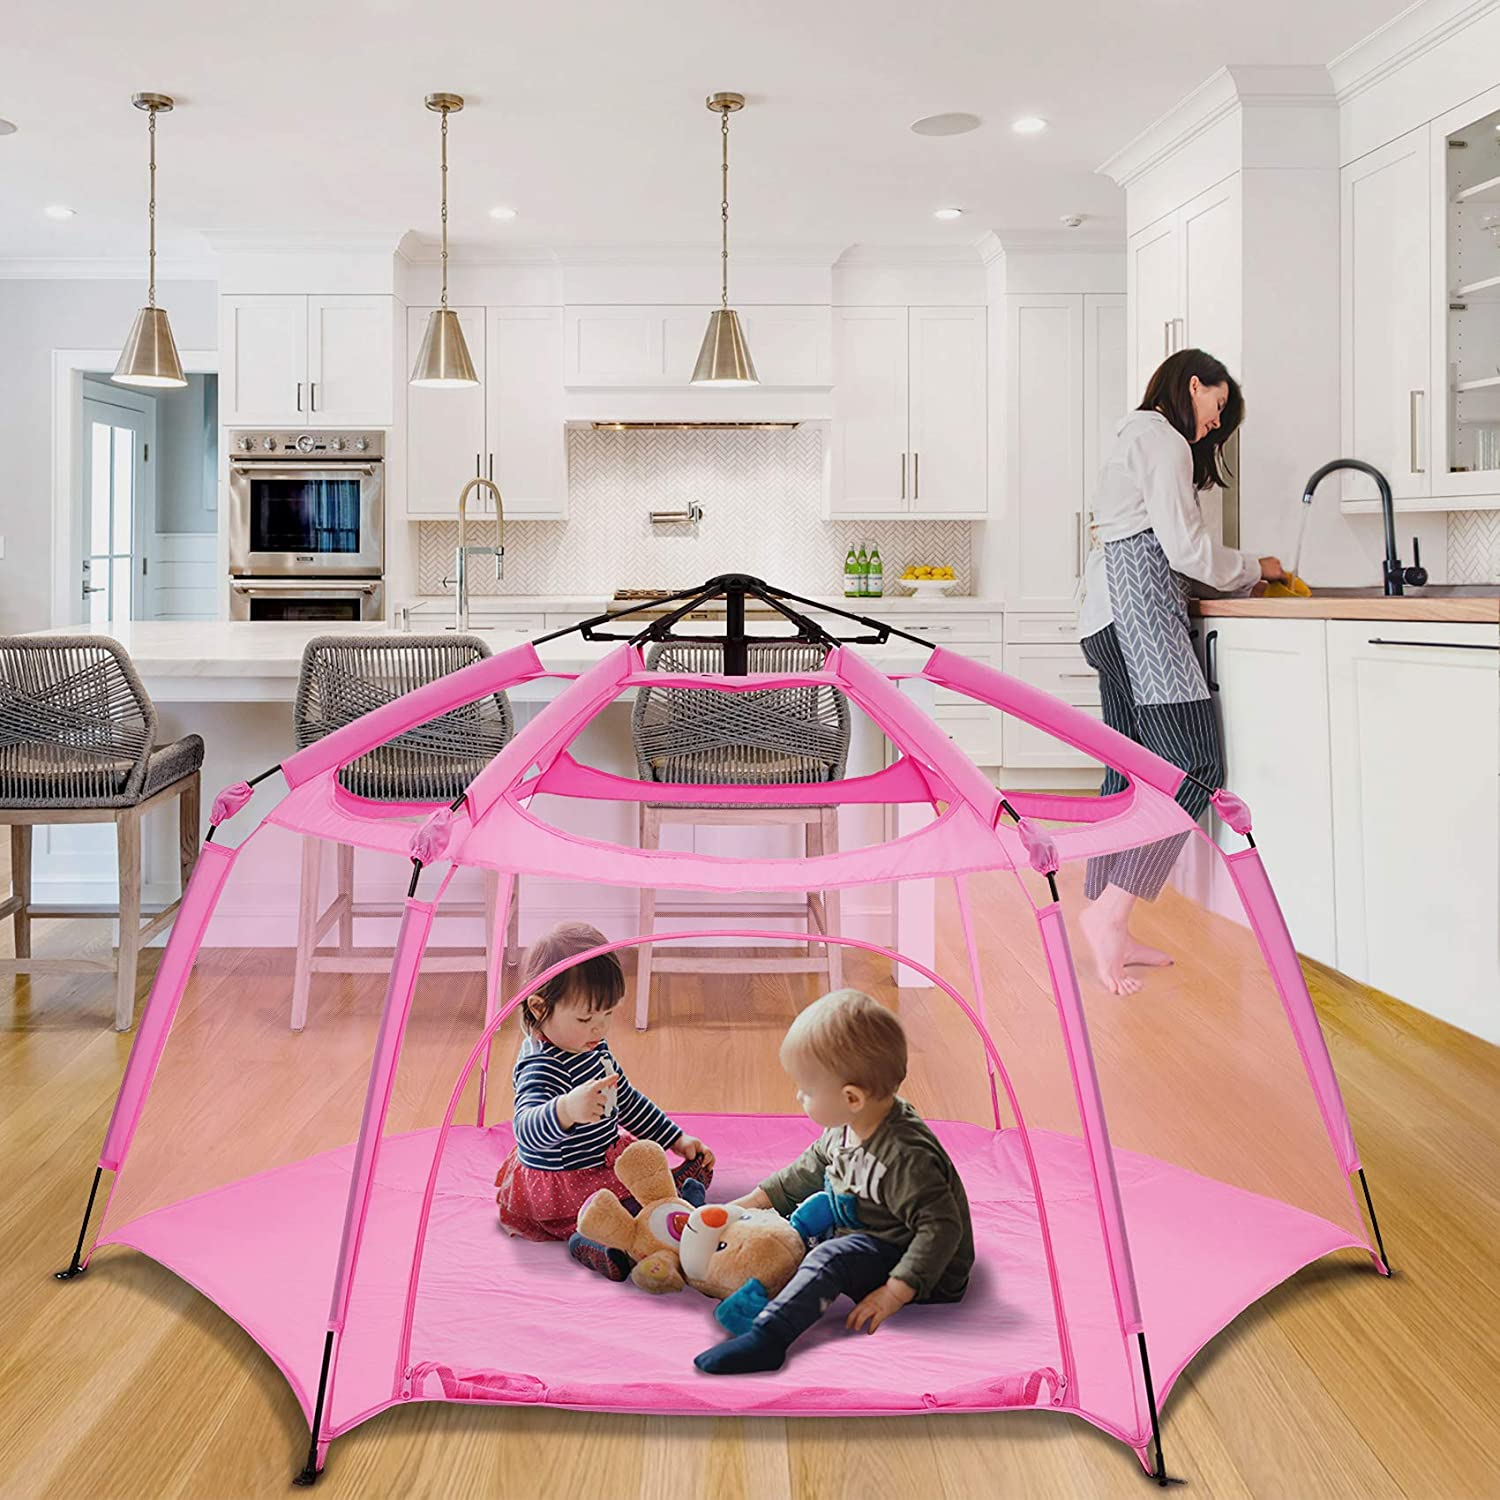 """Alvantor Playpen Play Yard Space Canopy Fence Pin 6 Panel Pop Up Foldable and Portable Lightweight Safe Indoor Outdoor Infants Babies Toddlers Kids 7'x7'x44"""" Pink Patent"""